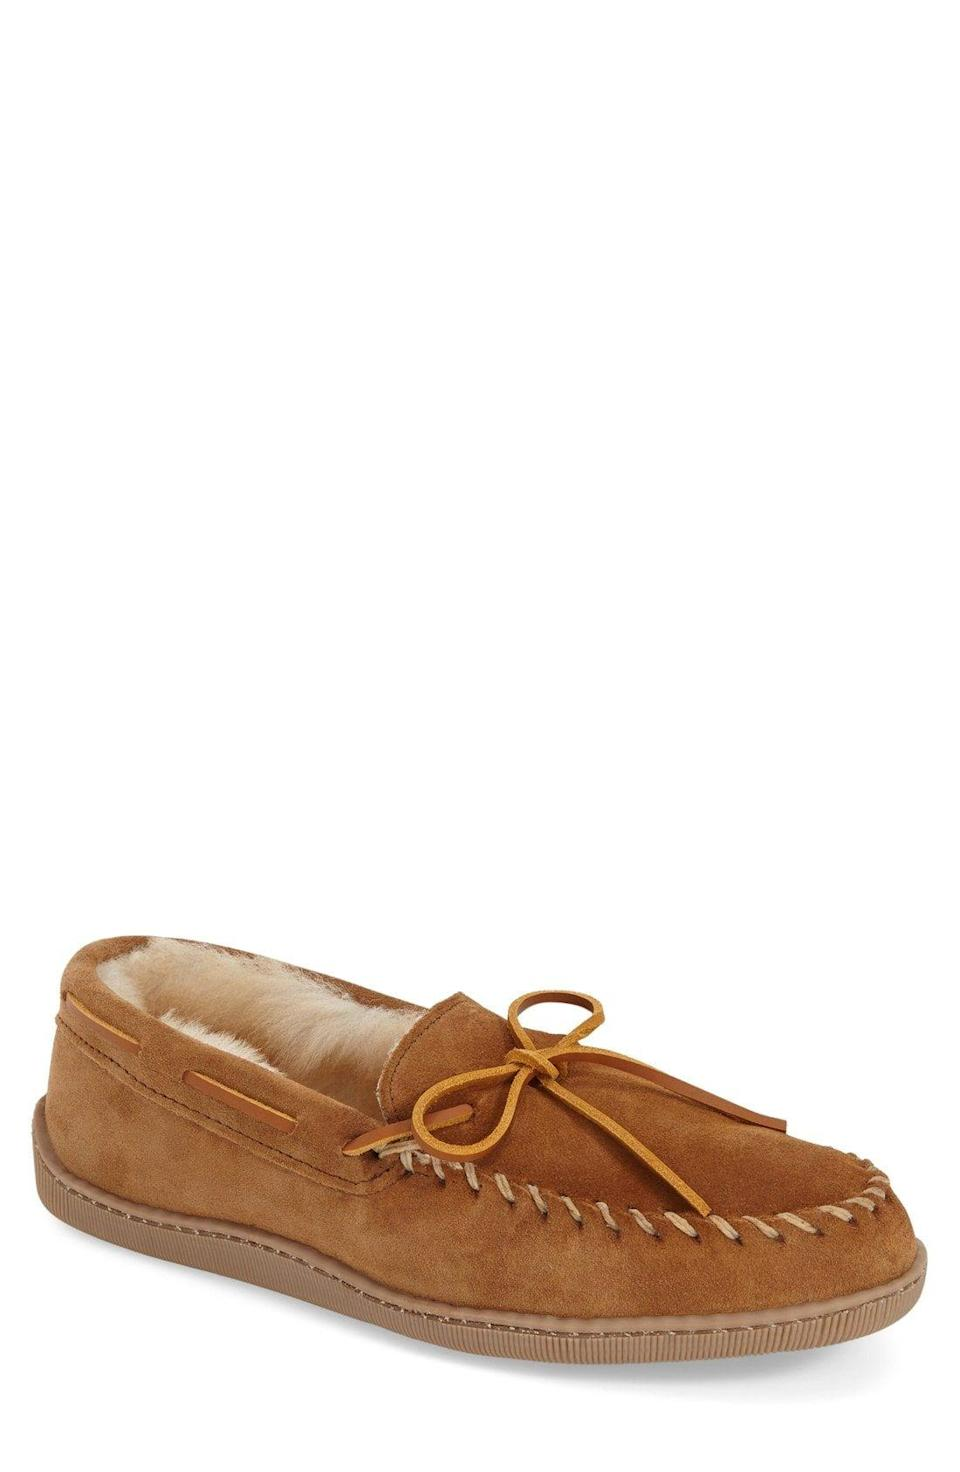 """<p><strong>Minnetonka</strong></p><p>nordstrom.com</p><p><strong>$69.95</strong></p><p><a href=""""https://go.redirectingat.com?id=74968X1596630&url=https%3A%2F%2Fshop.nordstrom.com%2Fs%2Fminnetonka-genuine-shearling-moccasin-slipper-men%2F4071734&sref=https%3A%2F%2Fwww.oprahdaily.com%2Flife%2Fg26961897%2Fgifts-for-new-dads%2F"""" rel=""""nofollow noopener"""" target=""""_blank"""" data-ylk=""""slk:Shop Now"""" class=""""link rapid-noclick-resp"""">Shop Now</a></p><p>If he lives in a multi-level home, one thing's for sure: Dad will be going up and down the stairs <em>a lot</em>. For his birthday, consider shearling slippers that will keep his feet cozy, plus have gripped bottoms to prevent him from slipping on those stairs.</p>"""